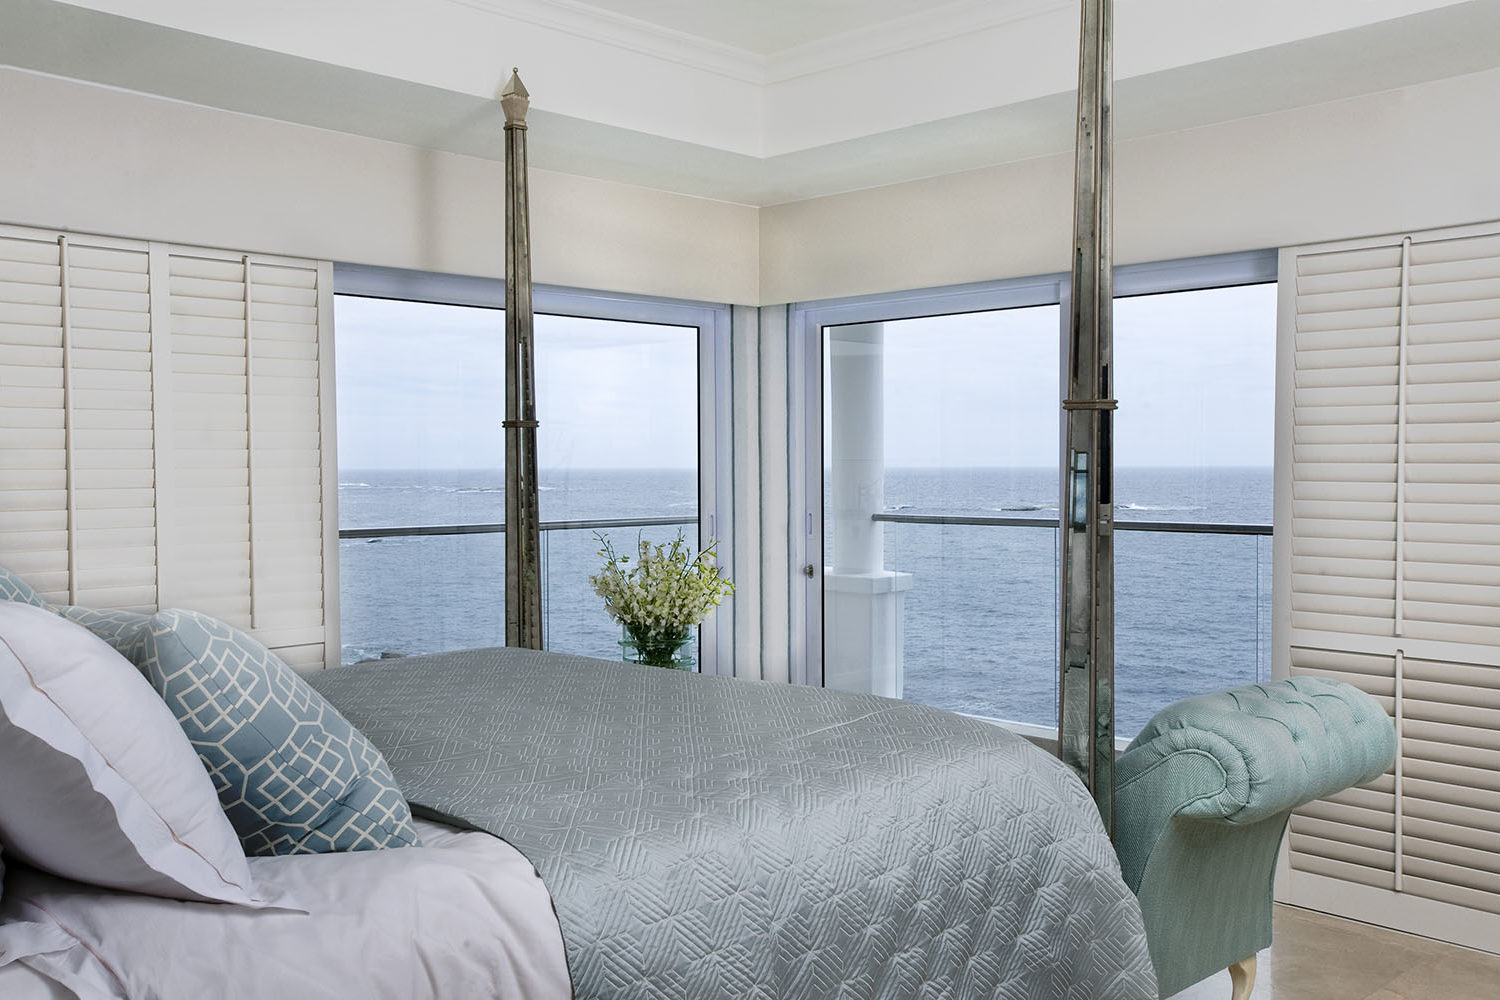 12 apostles hotel cape-town-south-africa-lodges-accommodation-zambia-in-style-rooms-sea-facing-suite